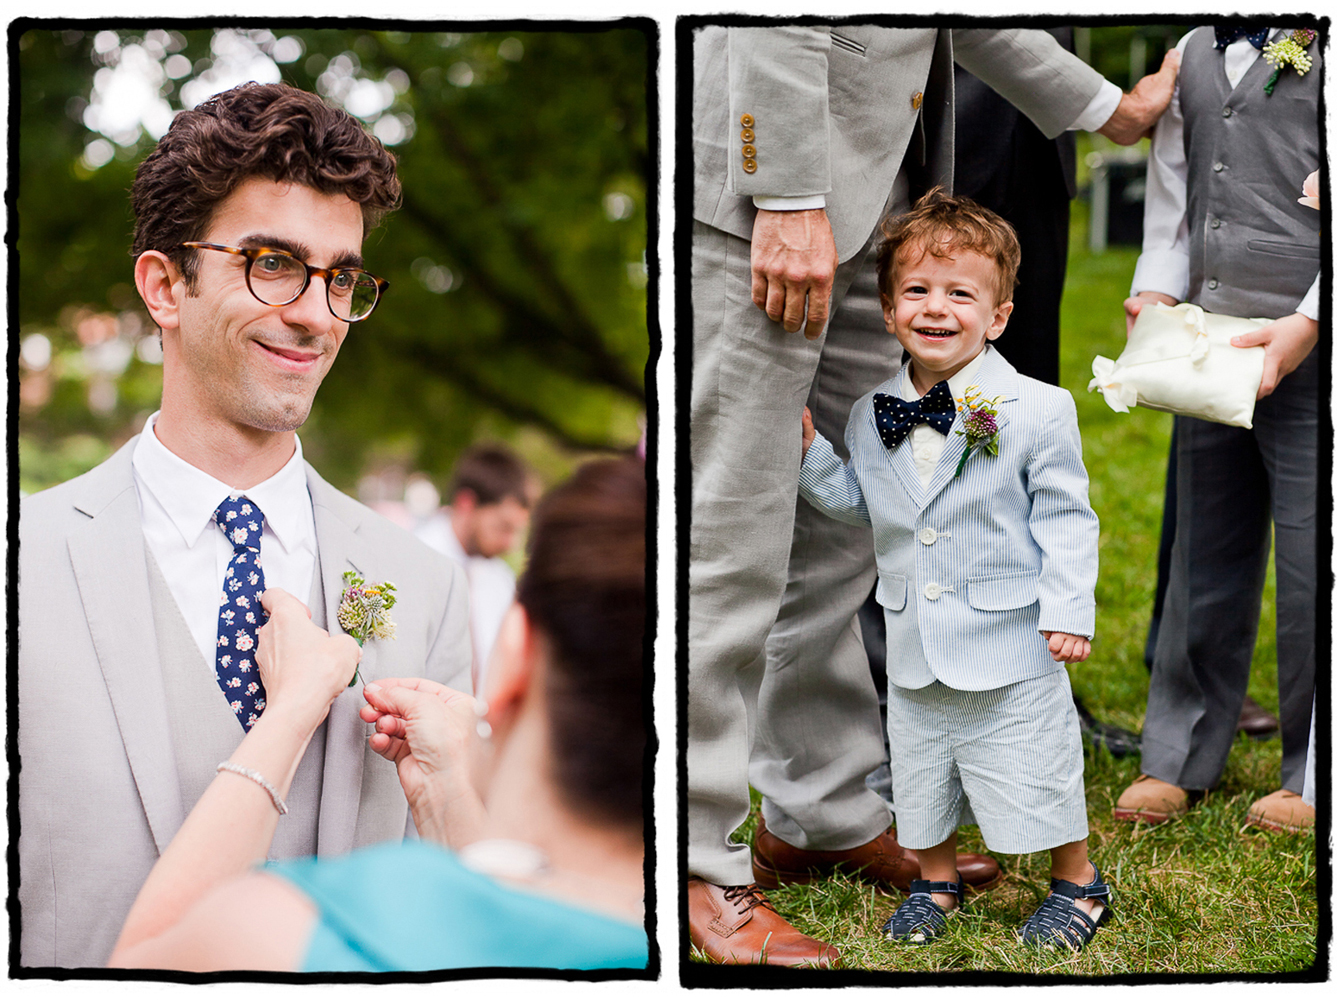 Michael and his ringbearer wore summery light grey suits at this New Jersey wedding featuring vintage and DIY decor.